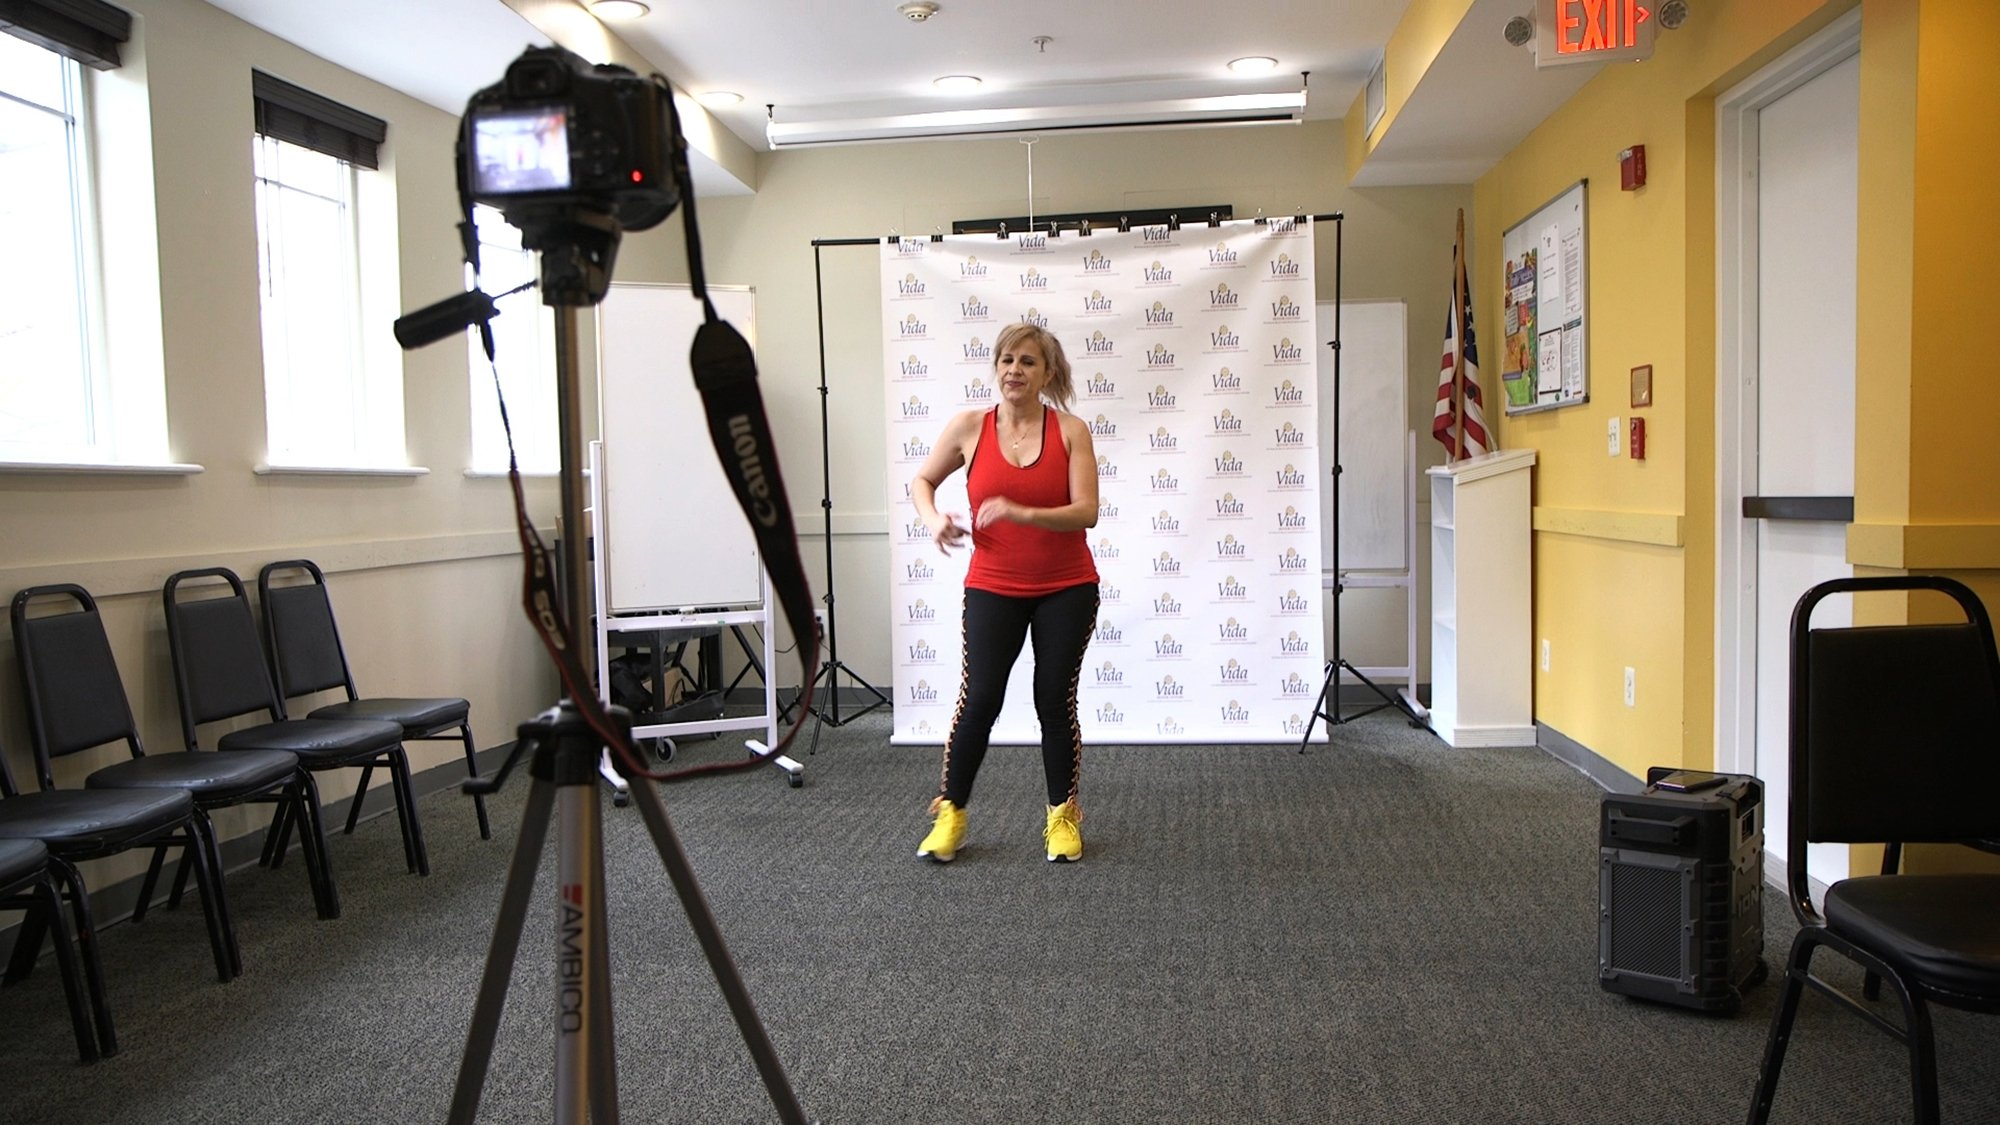 A dance instructor records a Zumba and exercise lesson that will be uploaded to the social media accounts of Vida Senior Center, in Washington, D.C., U.S., March 17, 2020. (AP Photo)